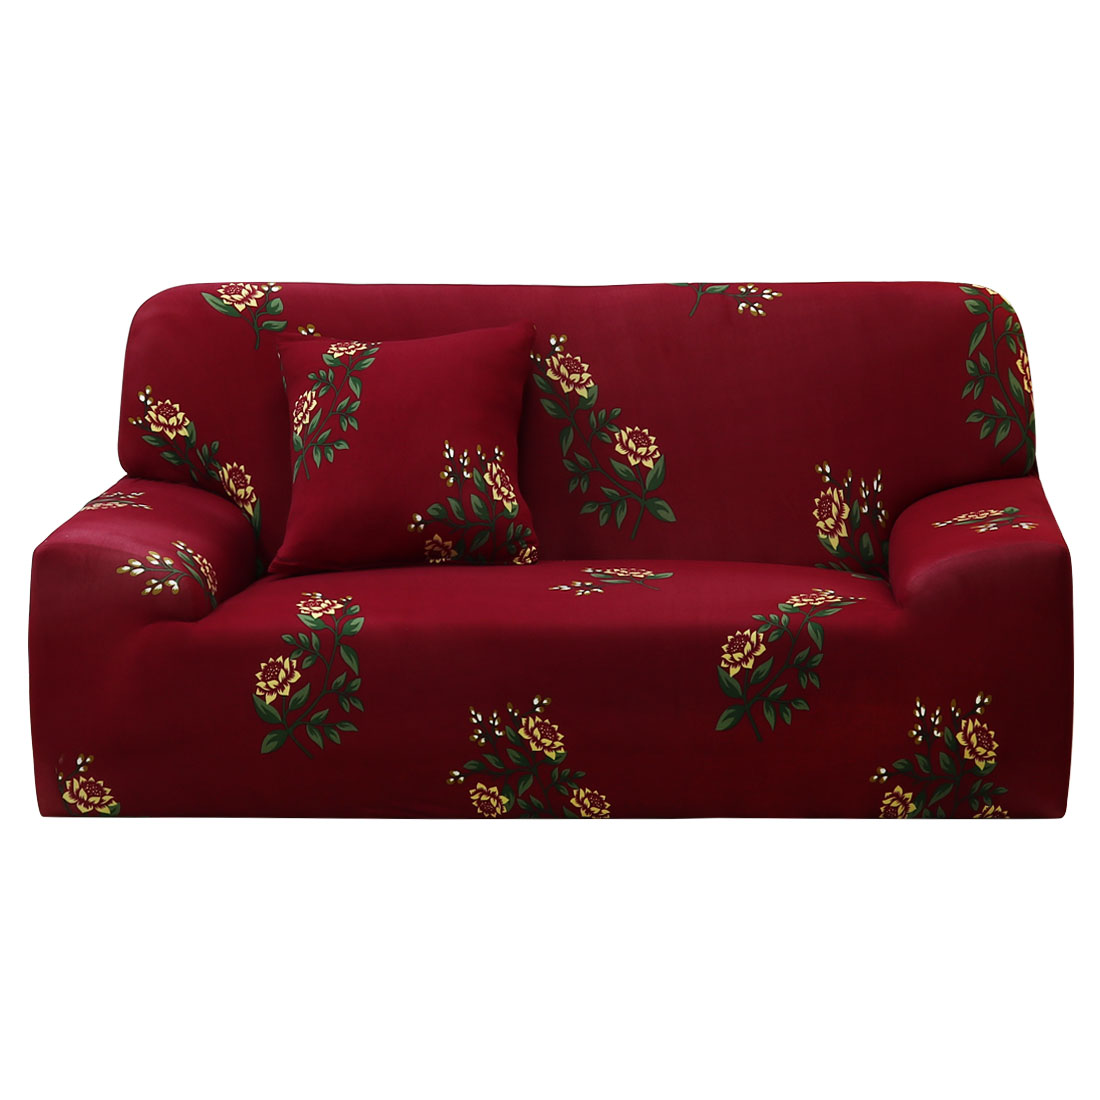 Floral Chair Loveseat Sofa Covers Full Cover Slipcover 7